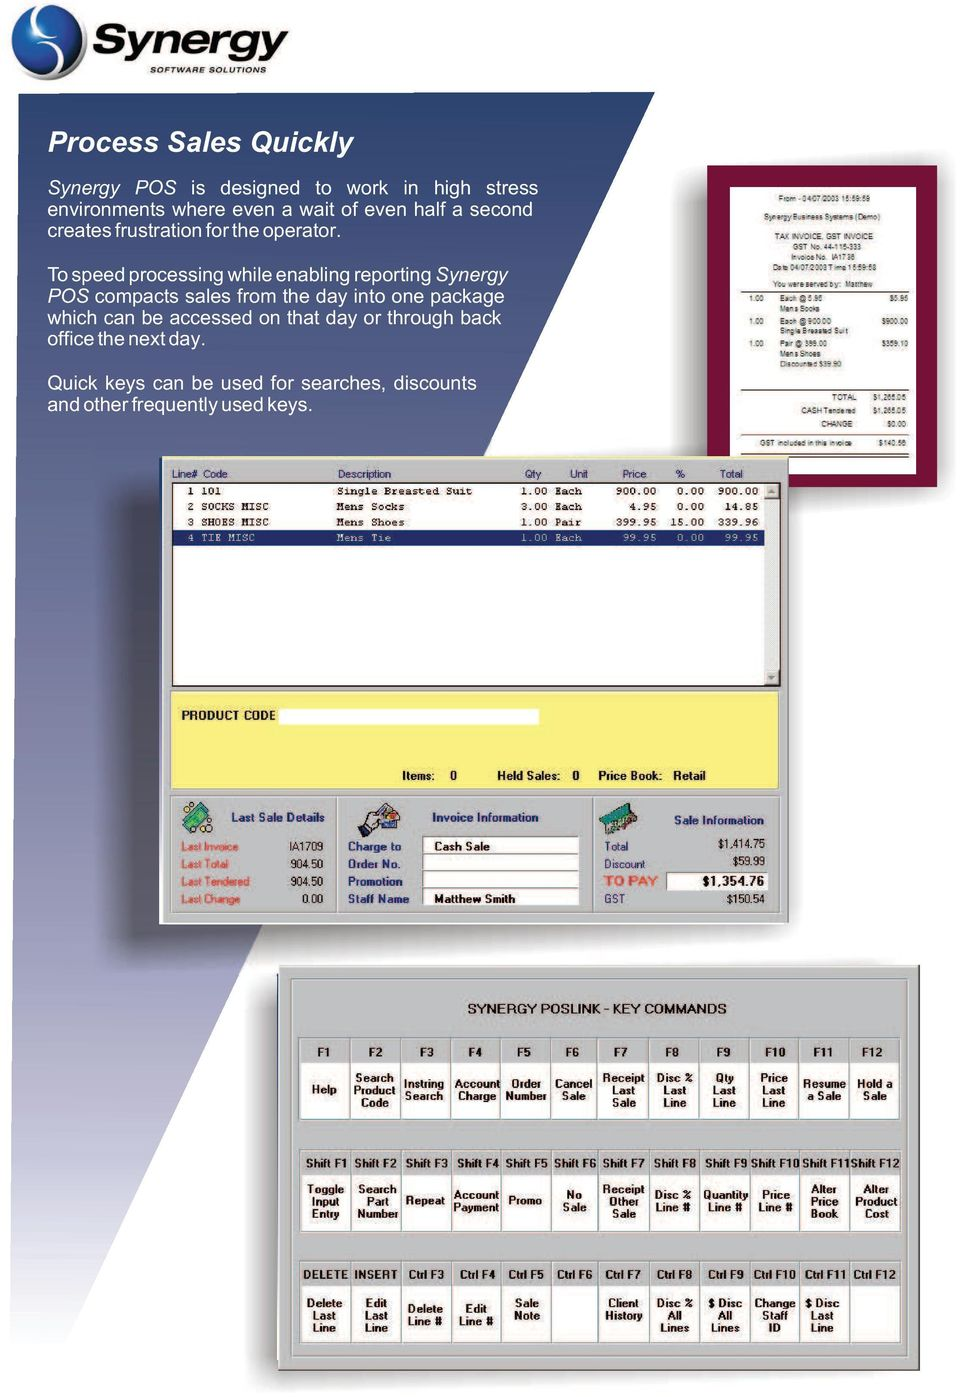 To speed processing while enabling reporting Synergy POS compacts sales from the day into one package